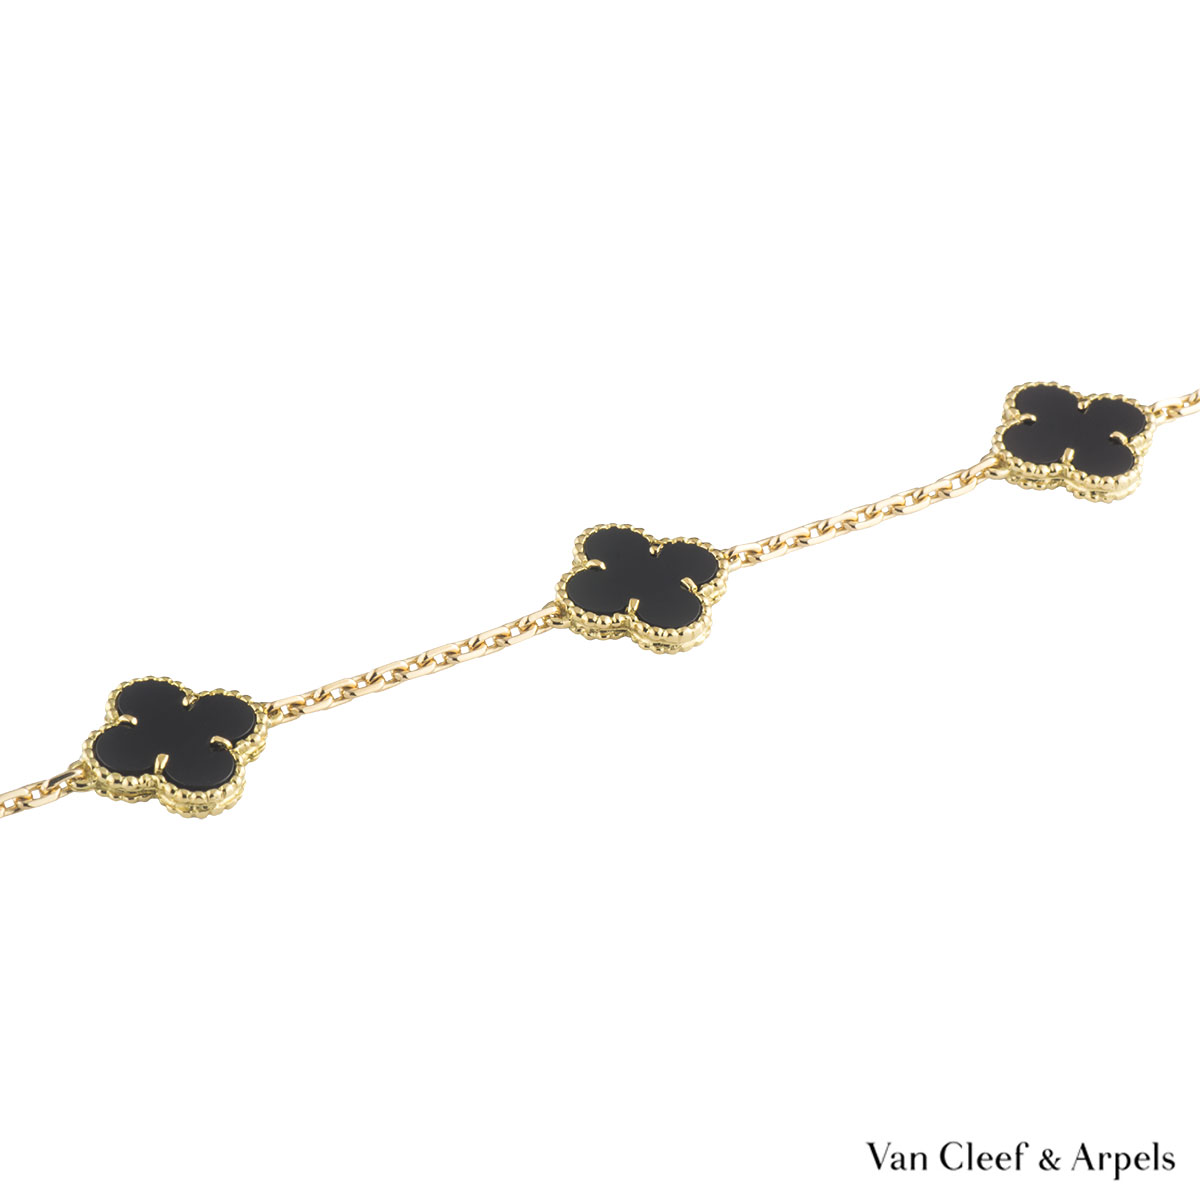 Van Cleef & Arpels Yellow Gold Onyx Vintage Alhambra Necklace VCARA42700